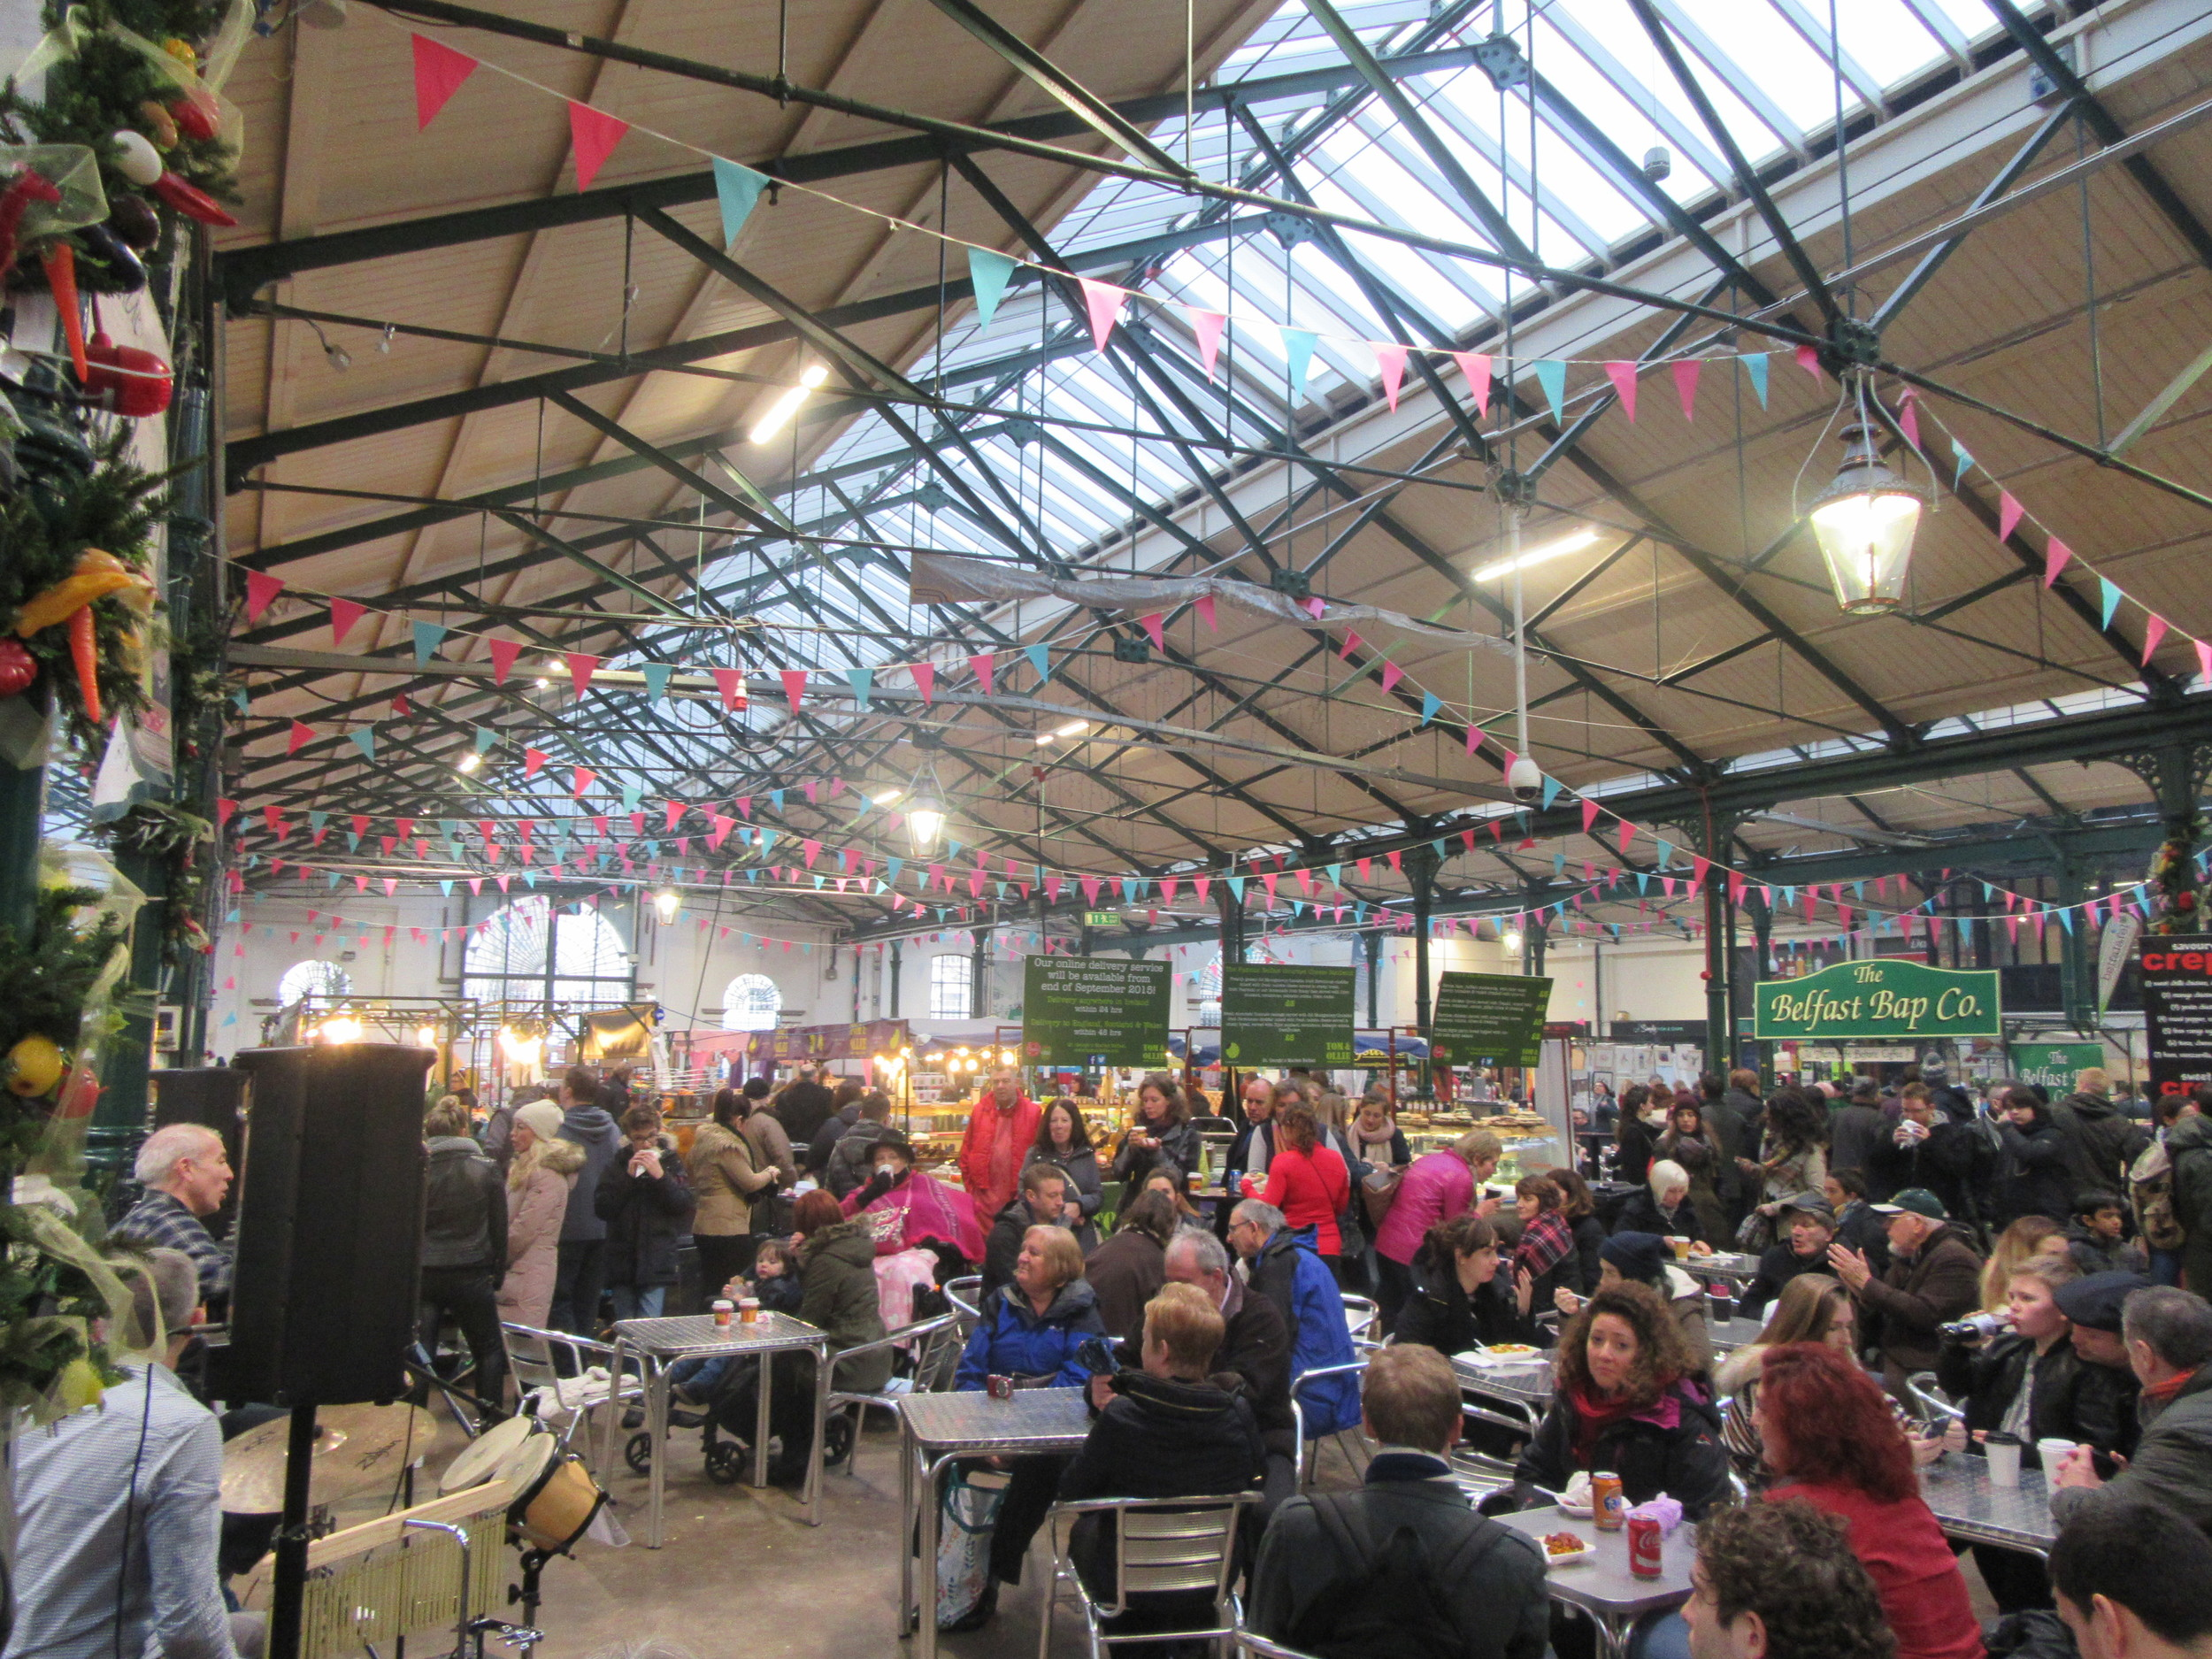 St George's Market won Large Indoor Market of the Year in 2014.